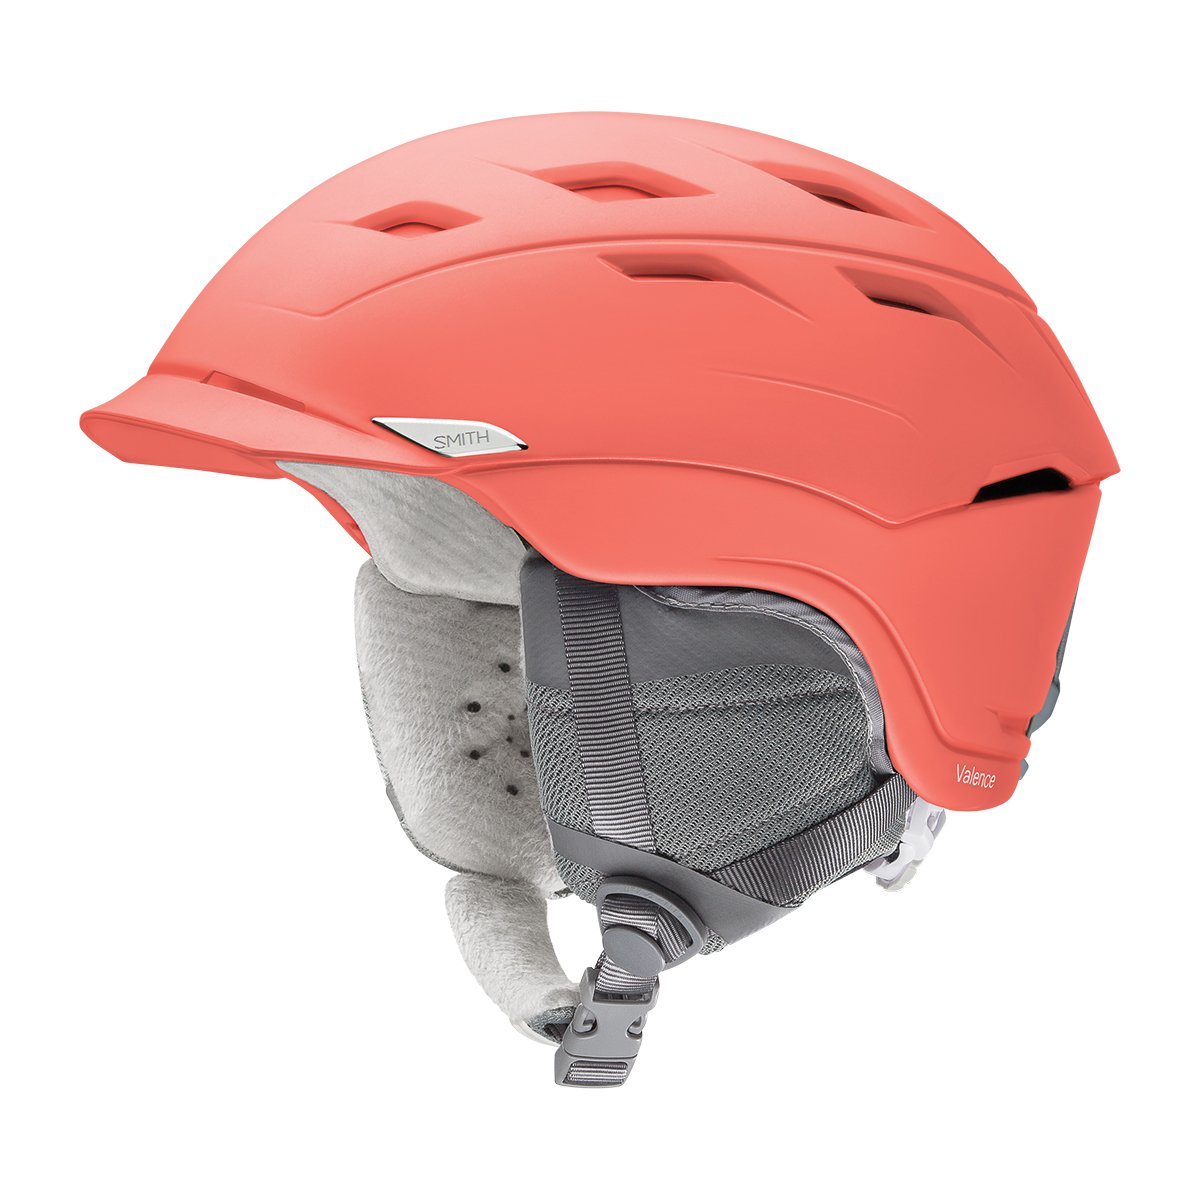 Smith Valence Snow Helmet - Matte Sunburst (Medium) by Smith Optics